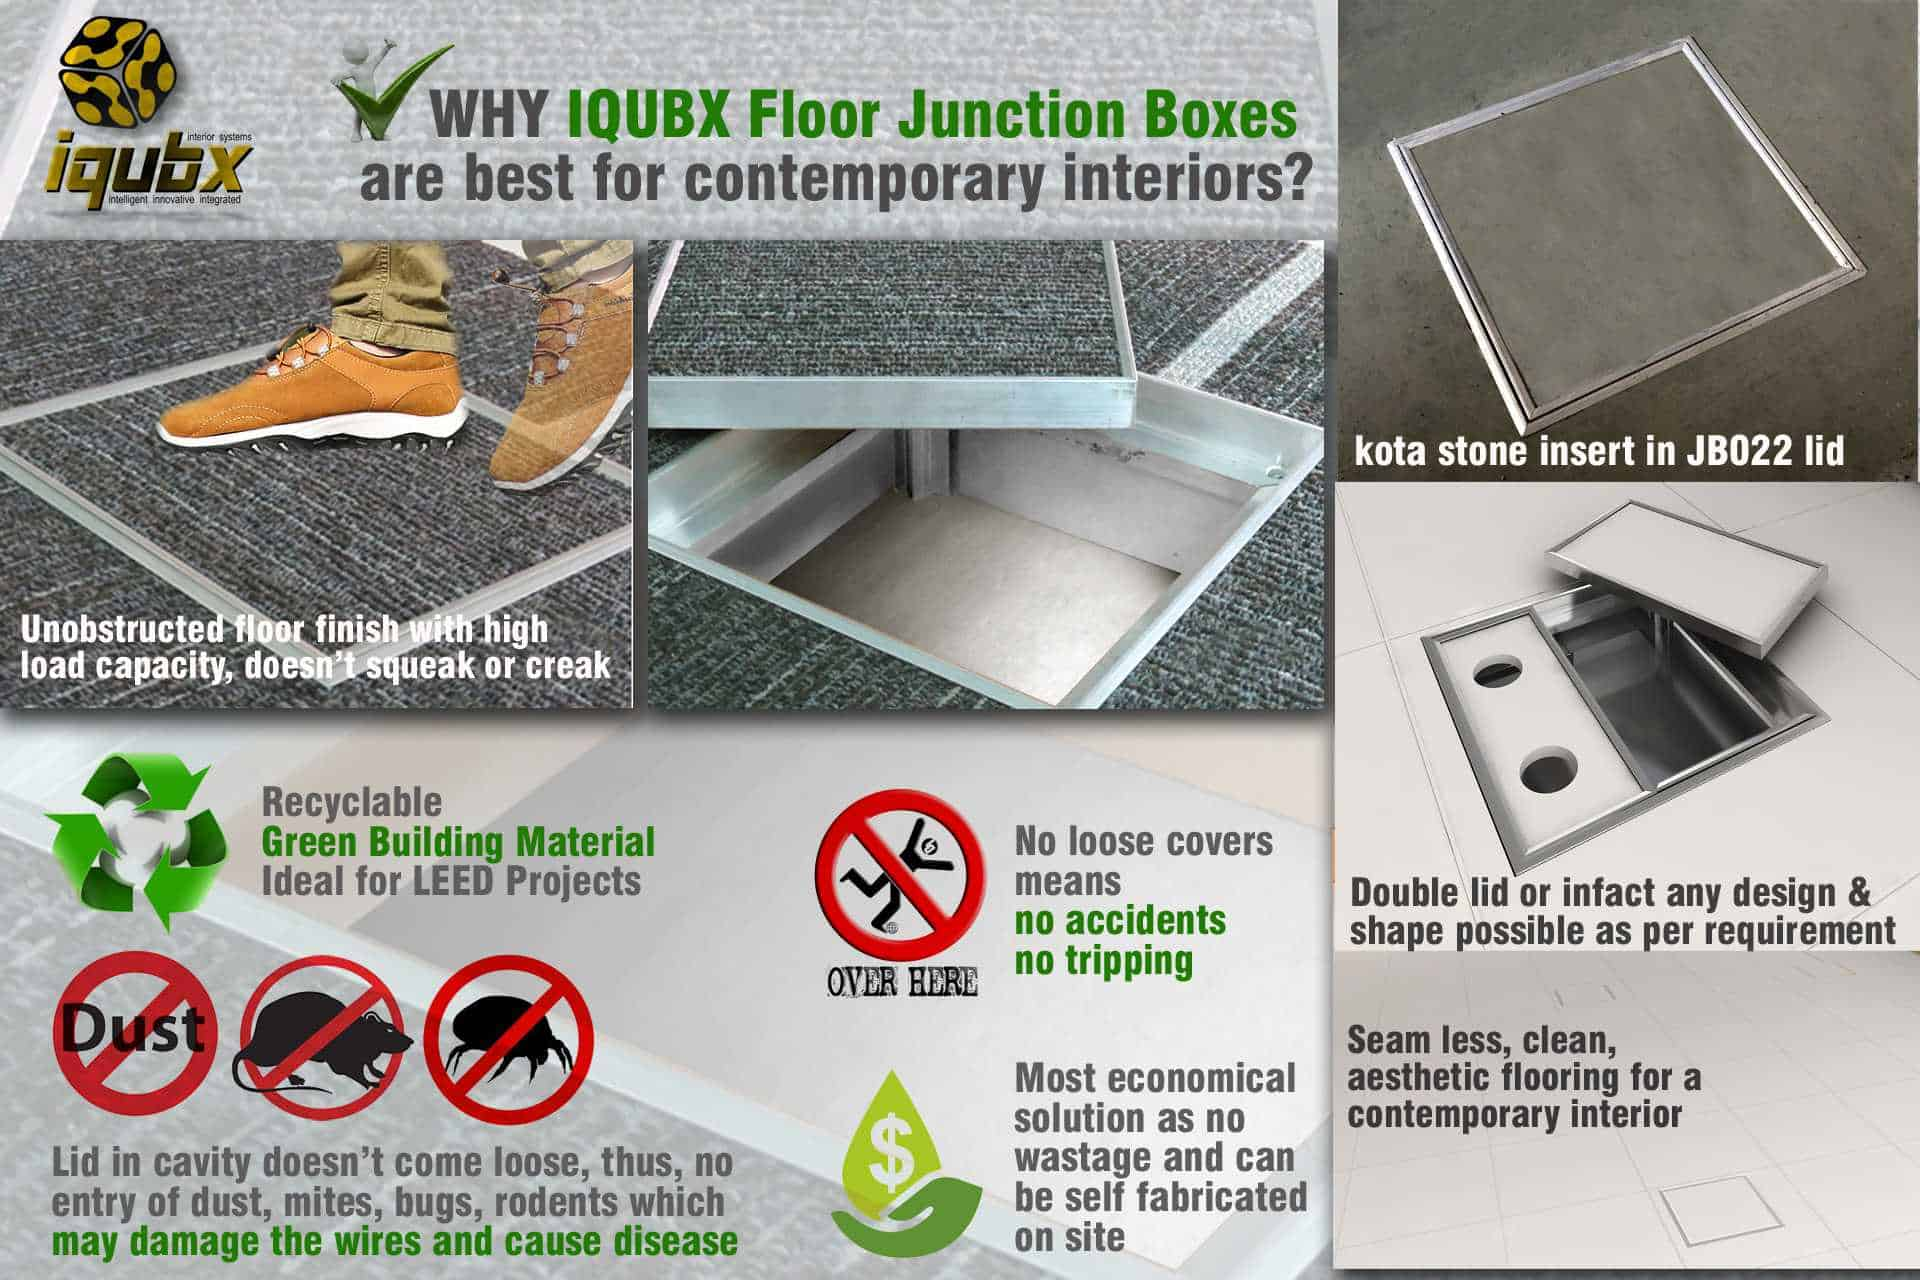 advantages of IQUBX Floor Junction Boxes - lid cover doesnt come loose preventing rodent and dust entry, can be made double lid, has seamless floor finish, high load bearing capacity